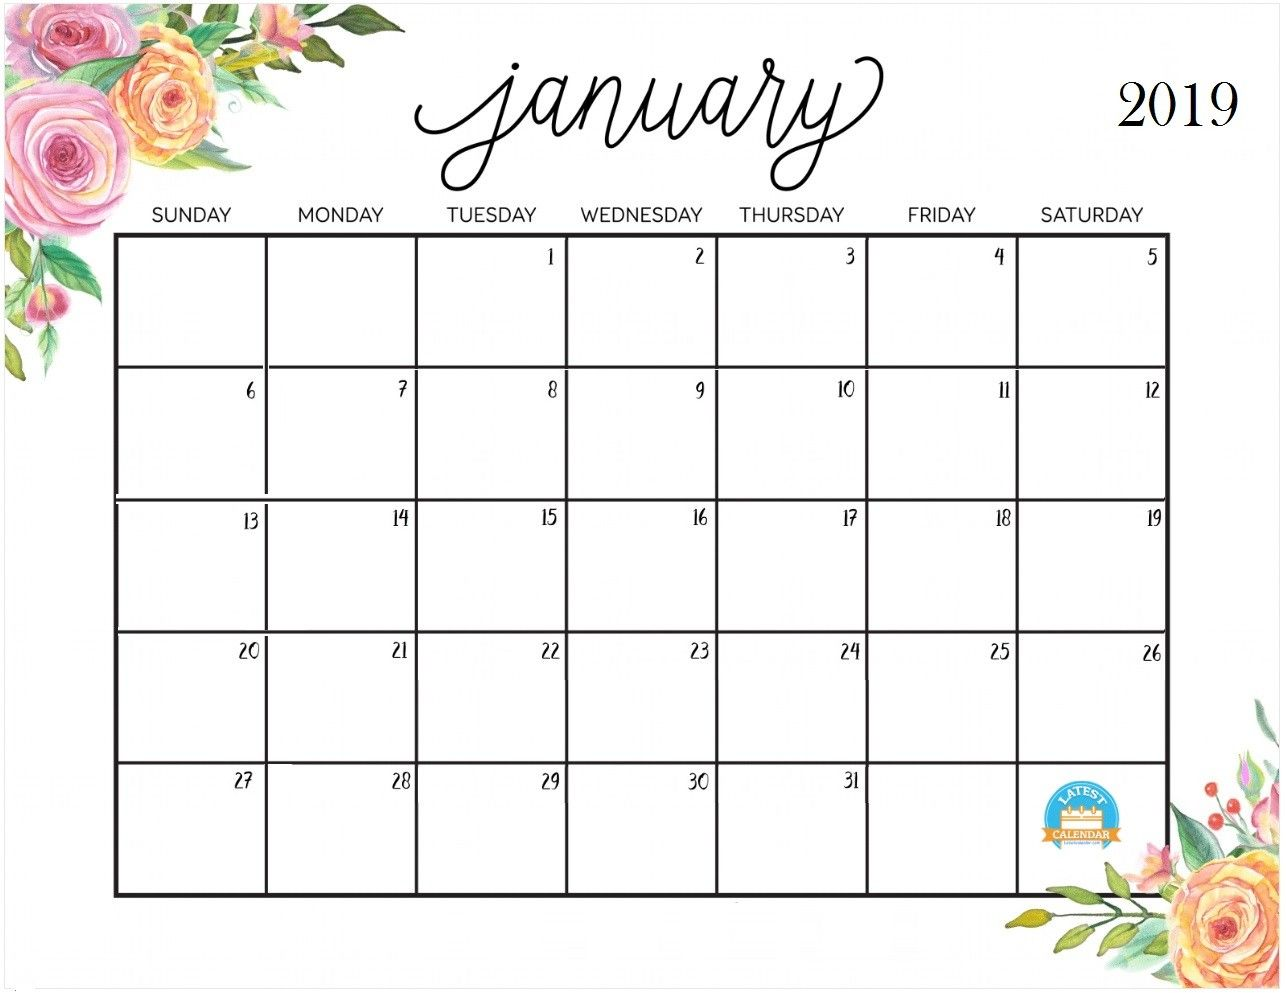 image regarding Cute Calendars identified as January 2019 Calendar Free of charge Down load Emma Kays boy or girl